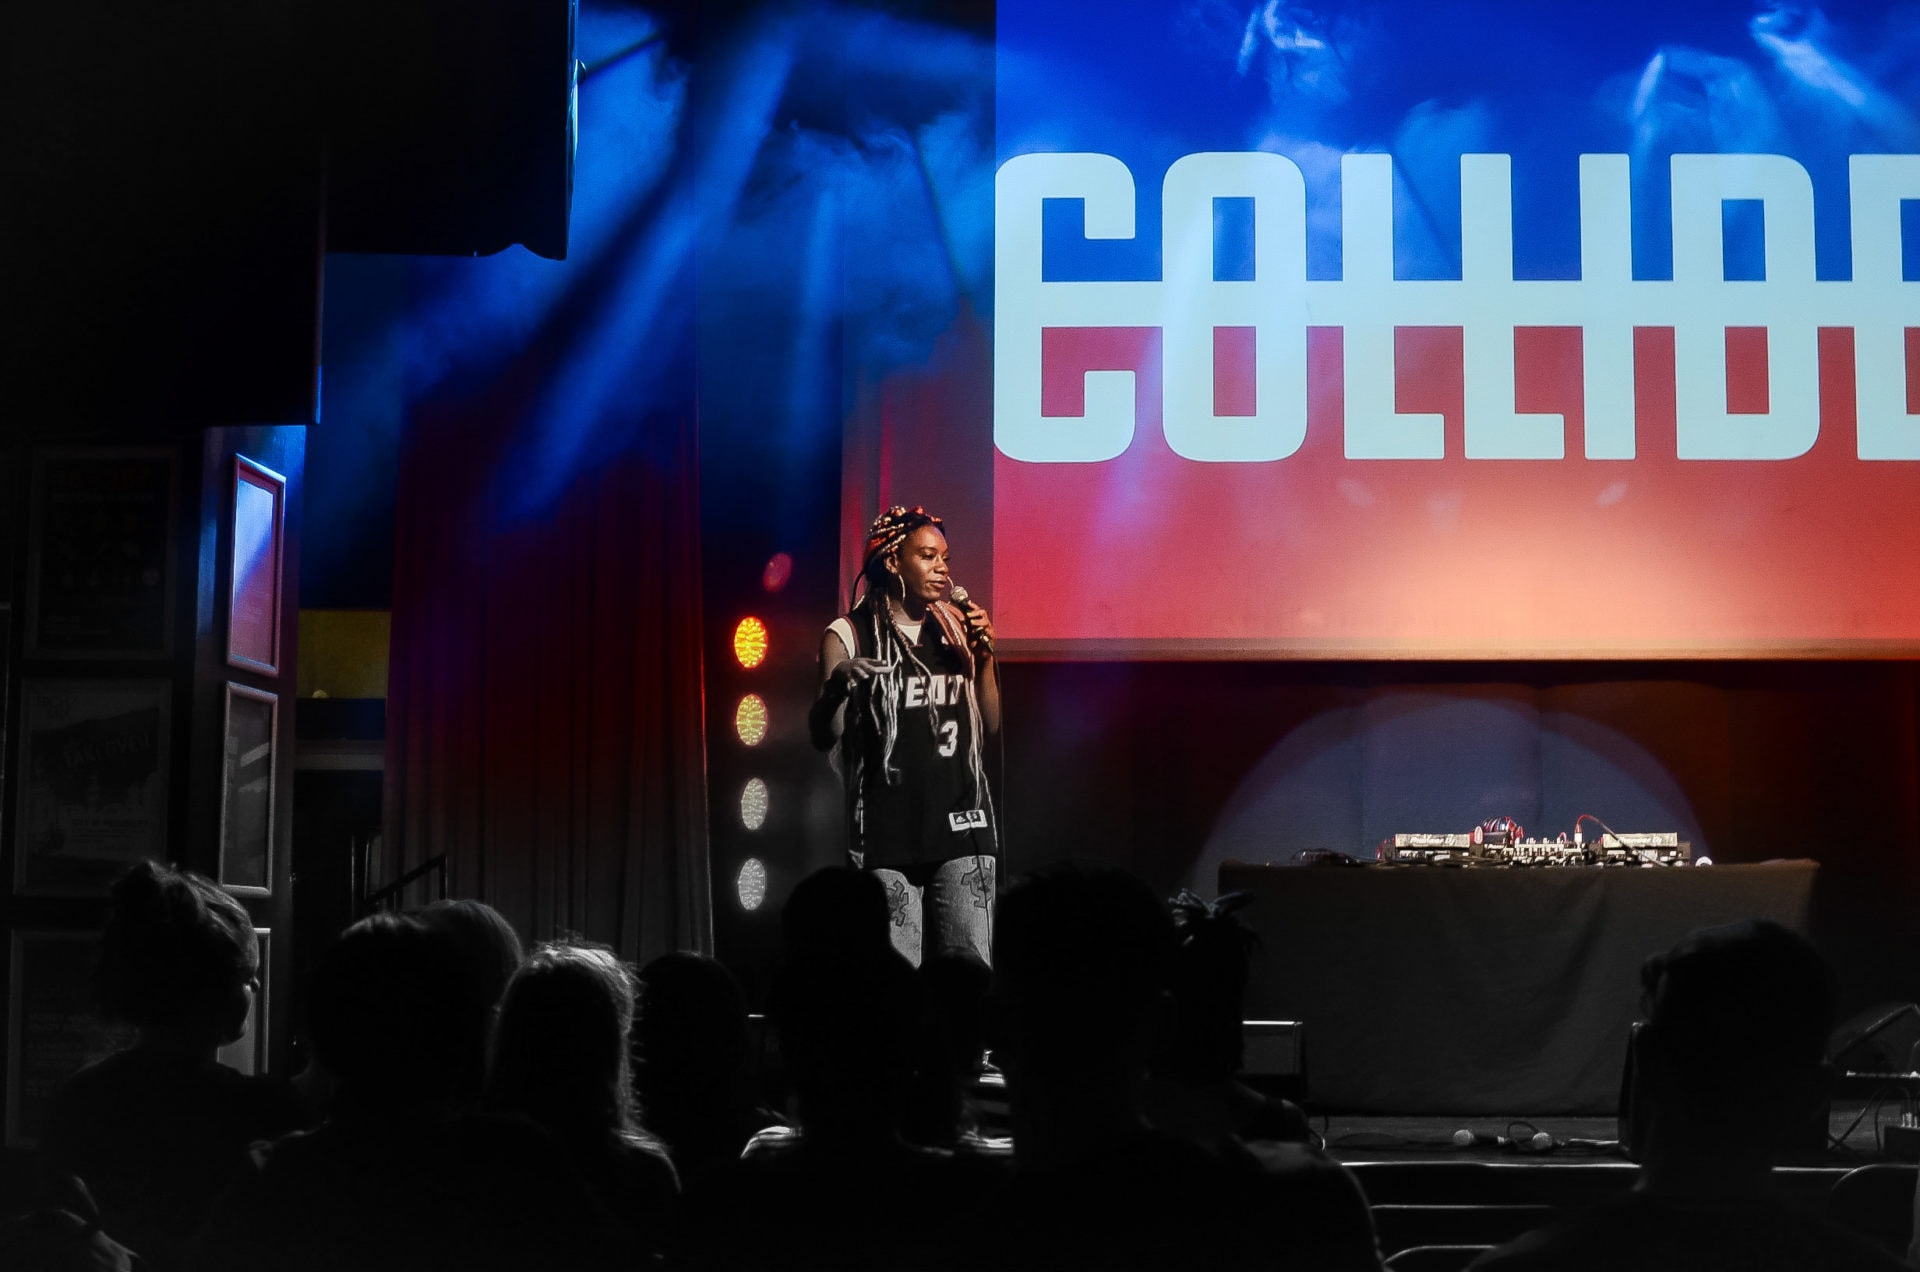 Naomi on stage speaking at Collide event